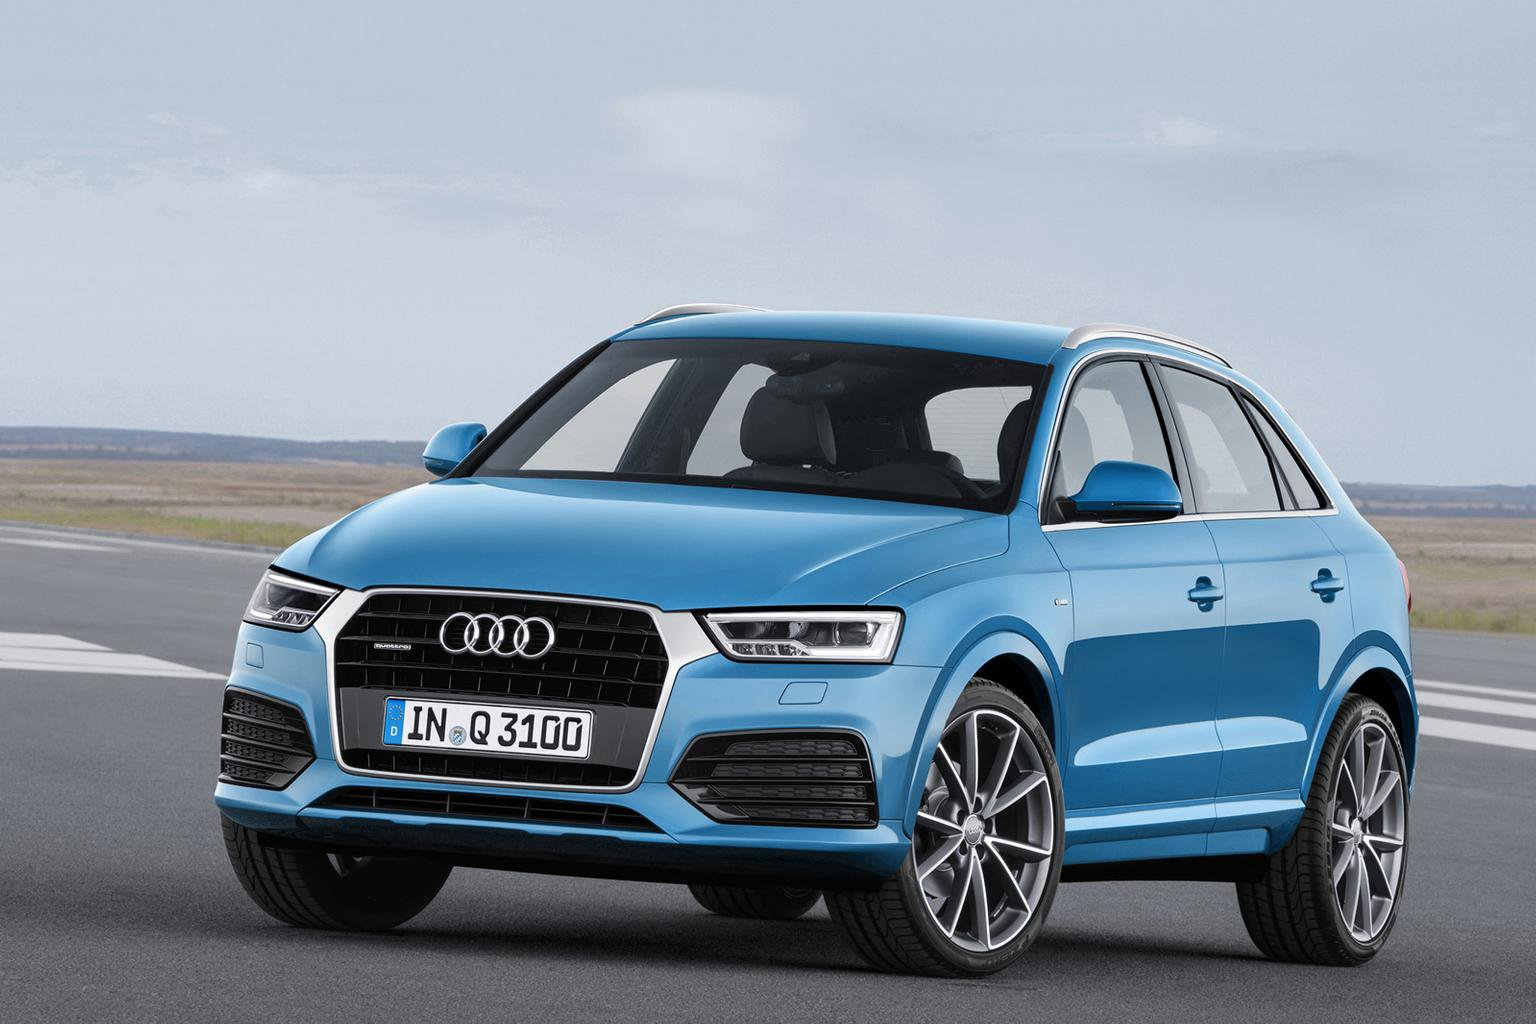 2015 Audi Q3 and RS Q3 revamp revealed